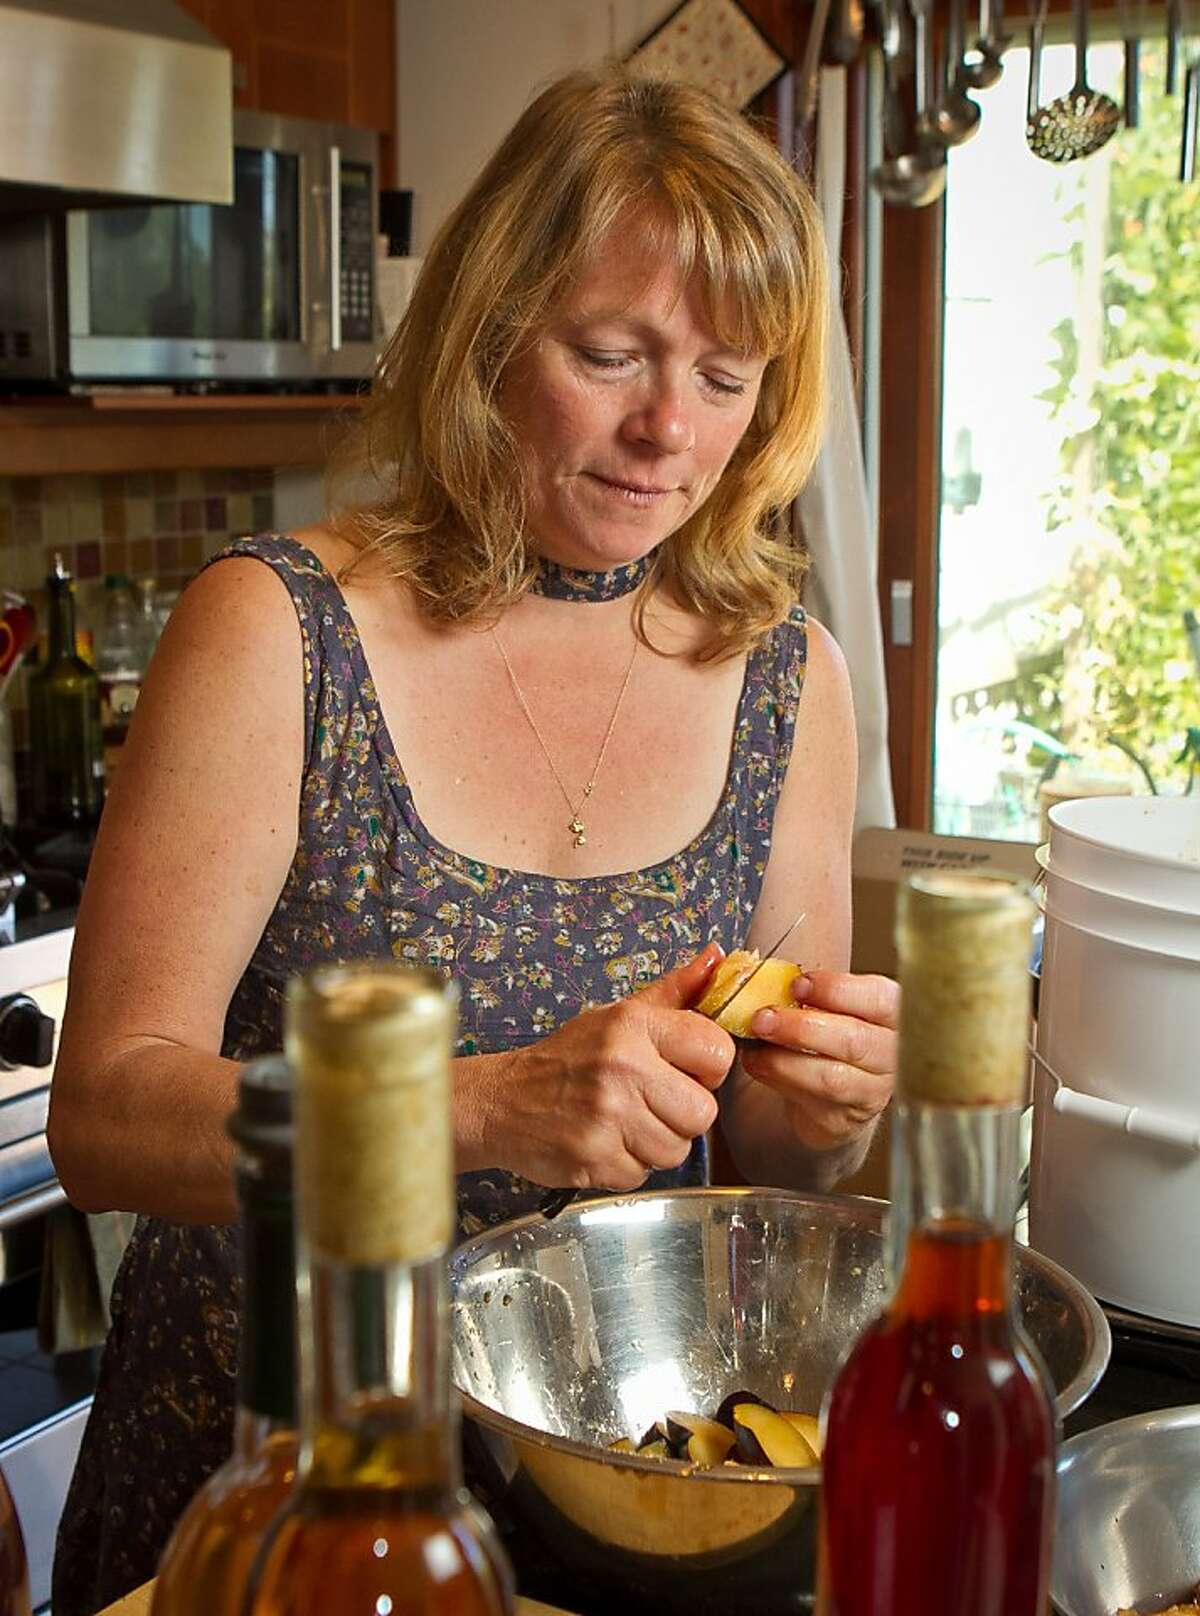 MaryEllen Kirkpatrick cuts up plums for making Plum Melomel at her home in San Francisco, Calif., on Tuesday, July 31st, 2012. She is making Plum Melomel from fermented honey and plums.